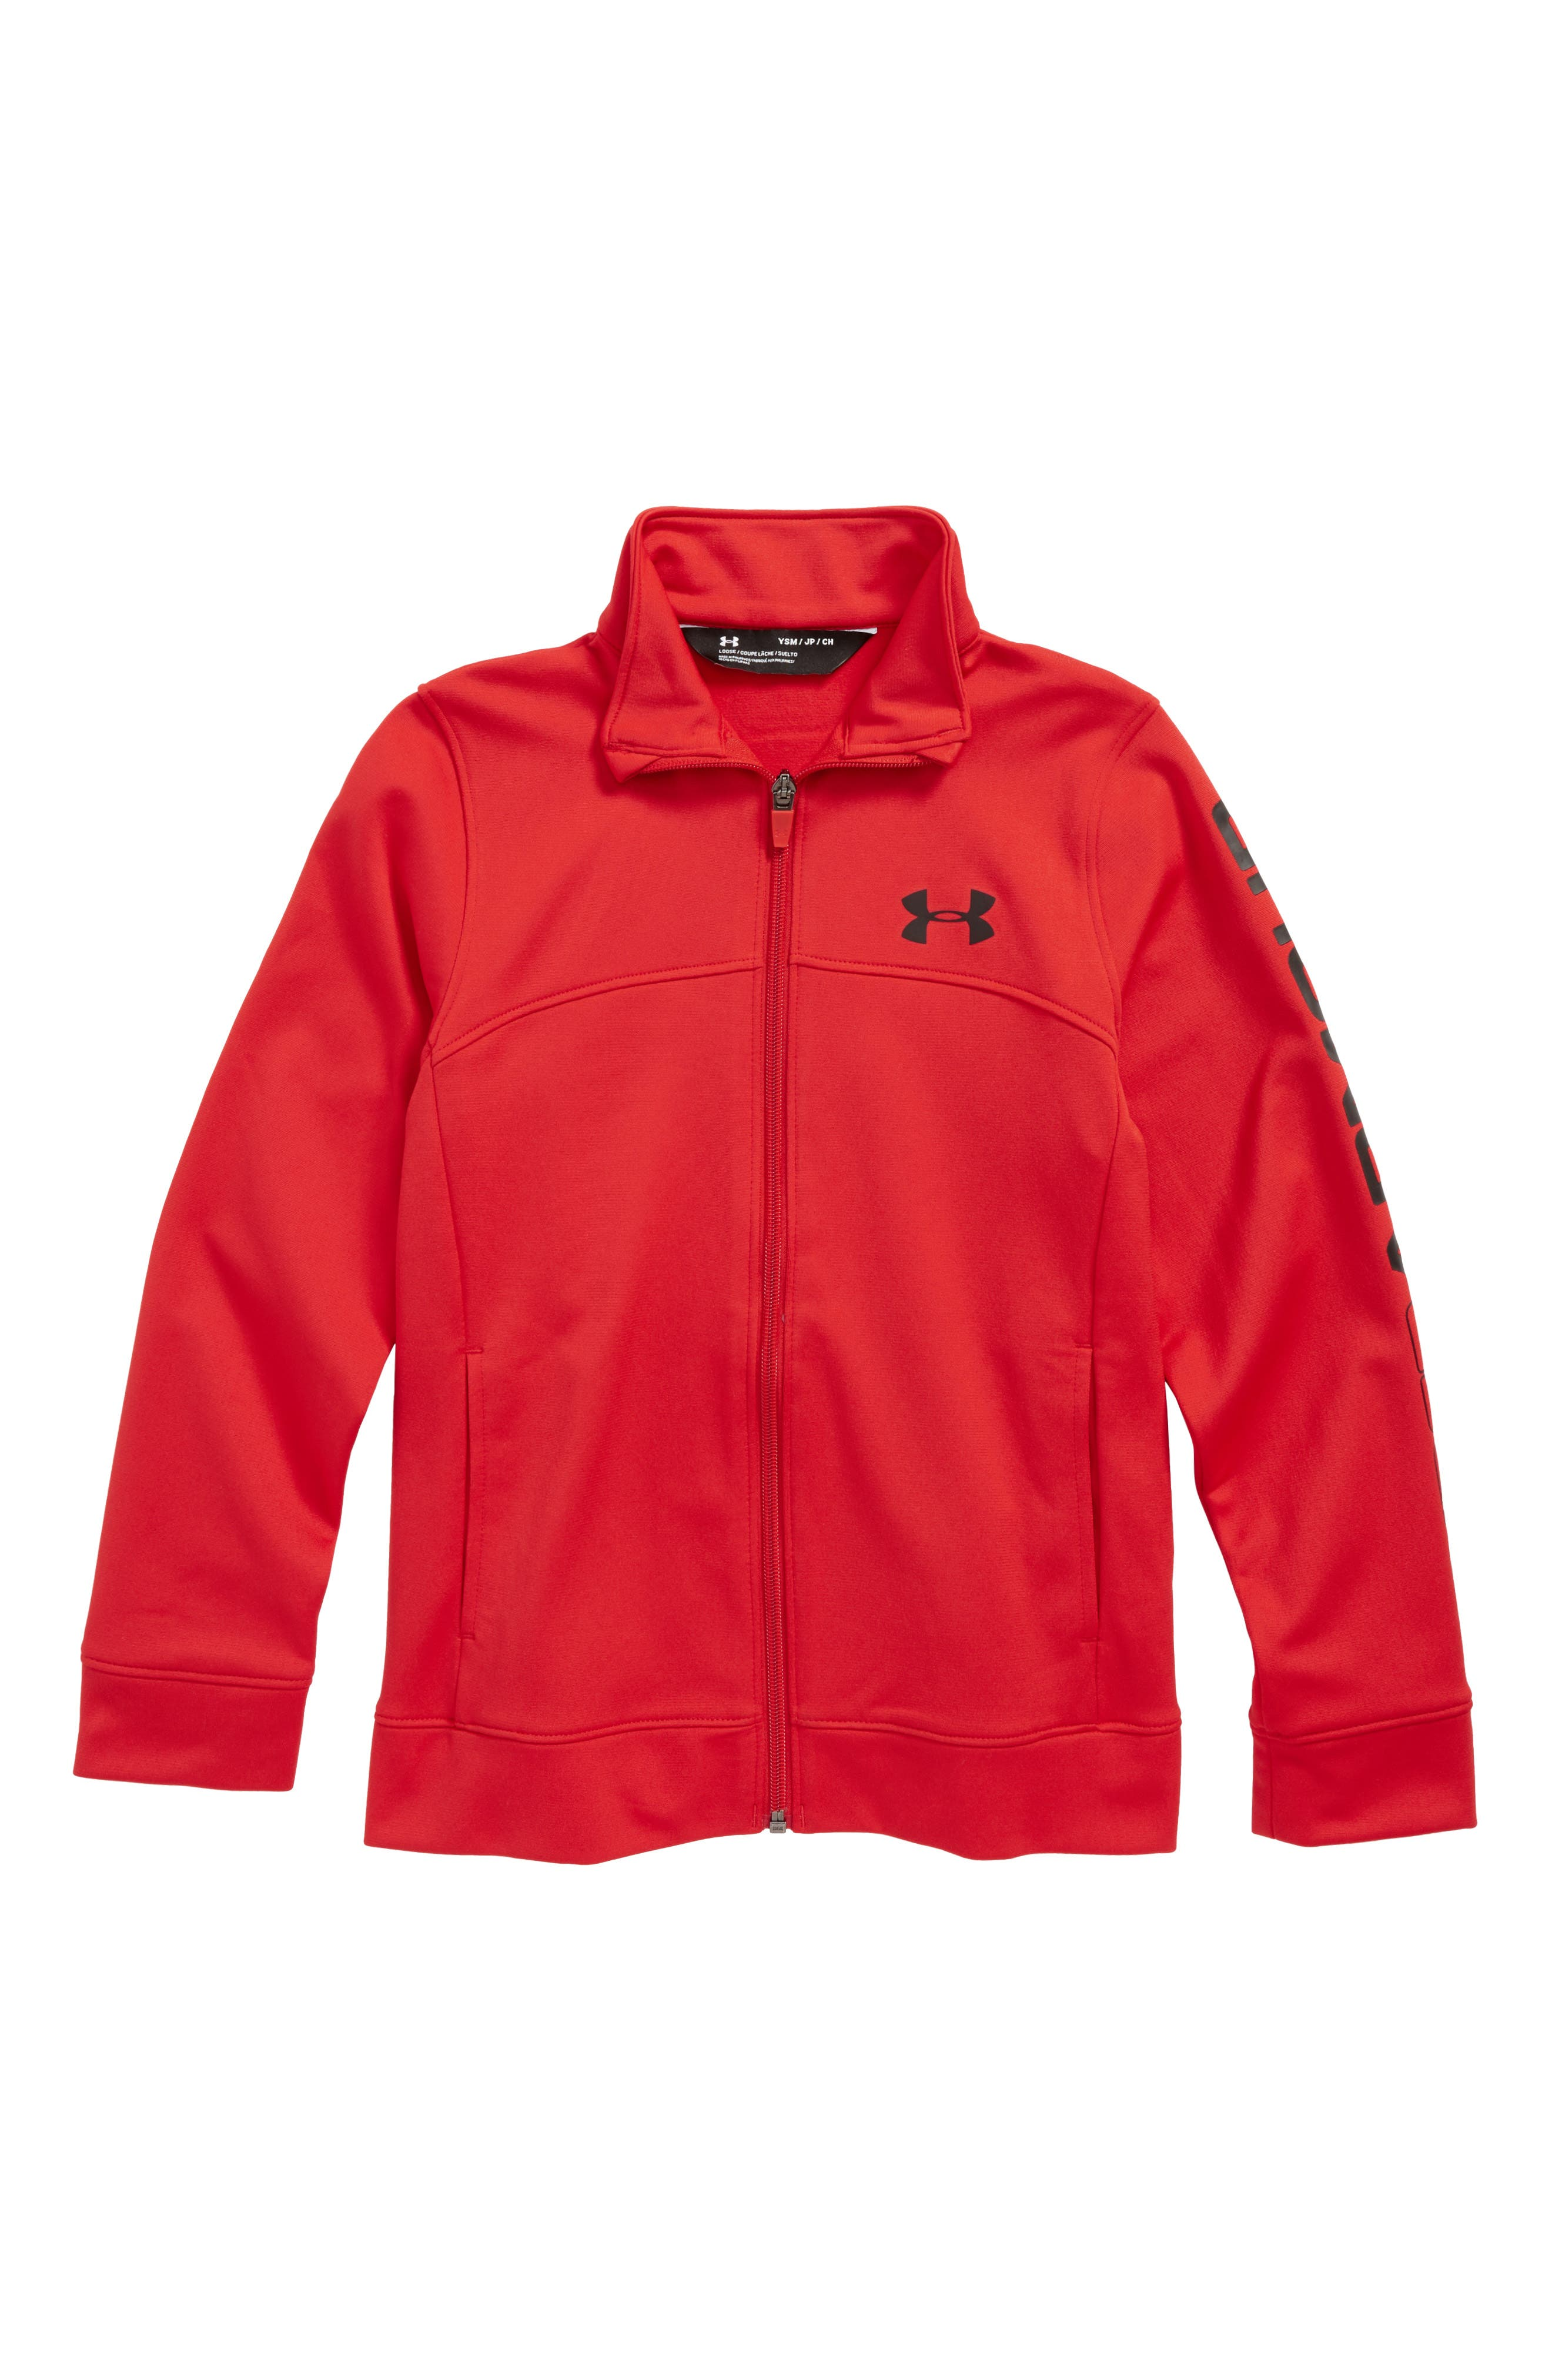 'Pennant' Warm Up Jacket,                             Main thumbnail 1, color,                             Red/ Black